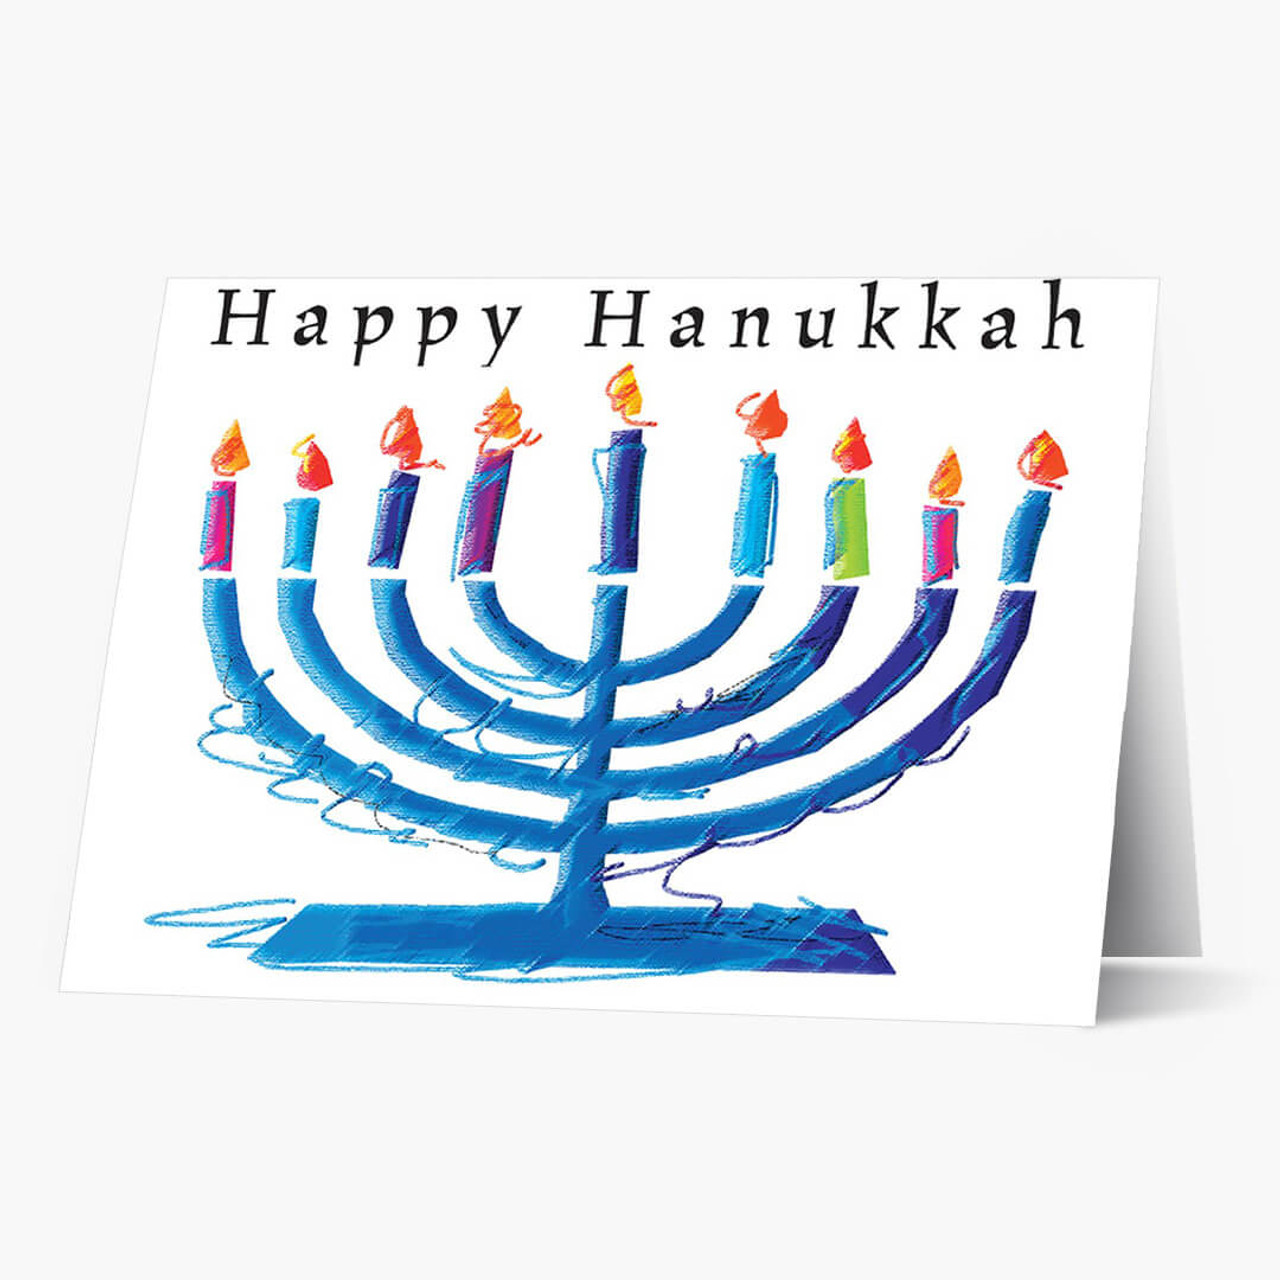 Hanukkah Celebration Card